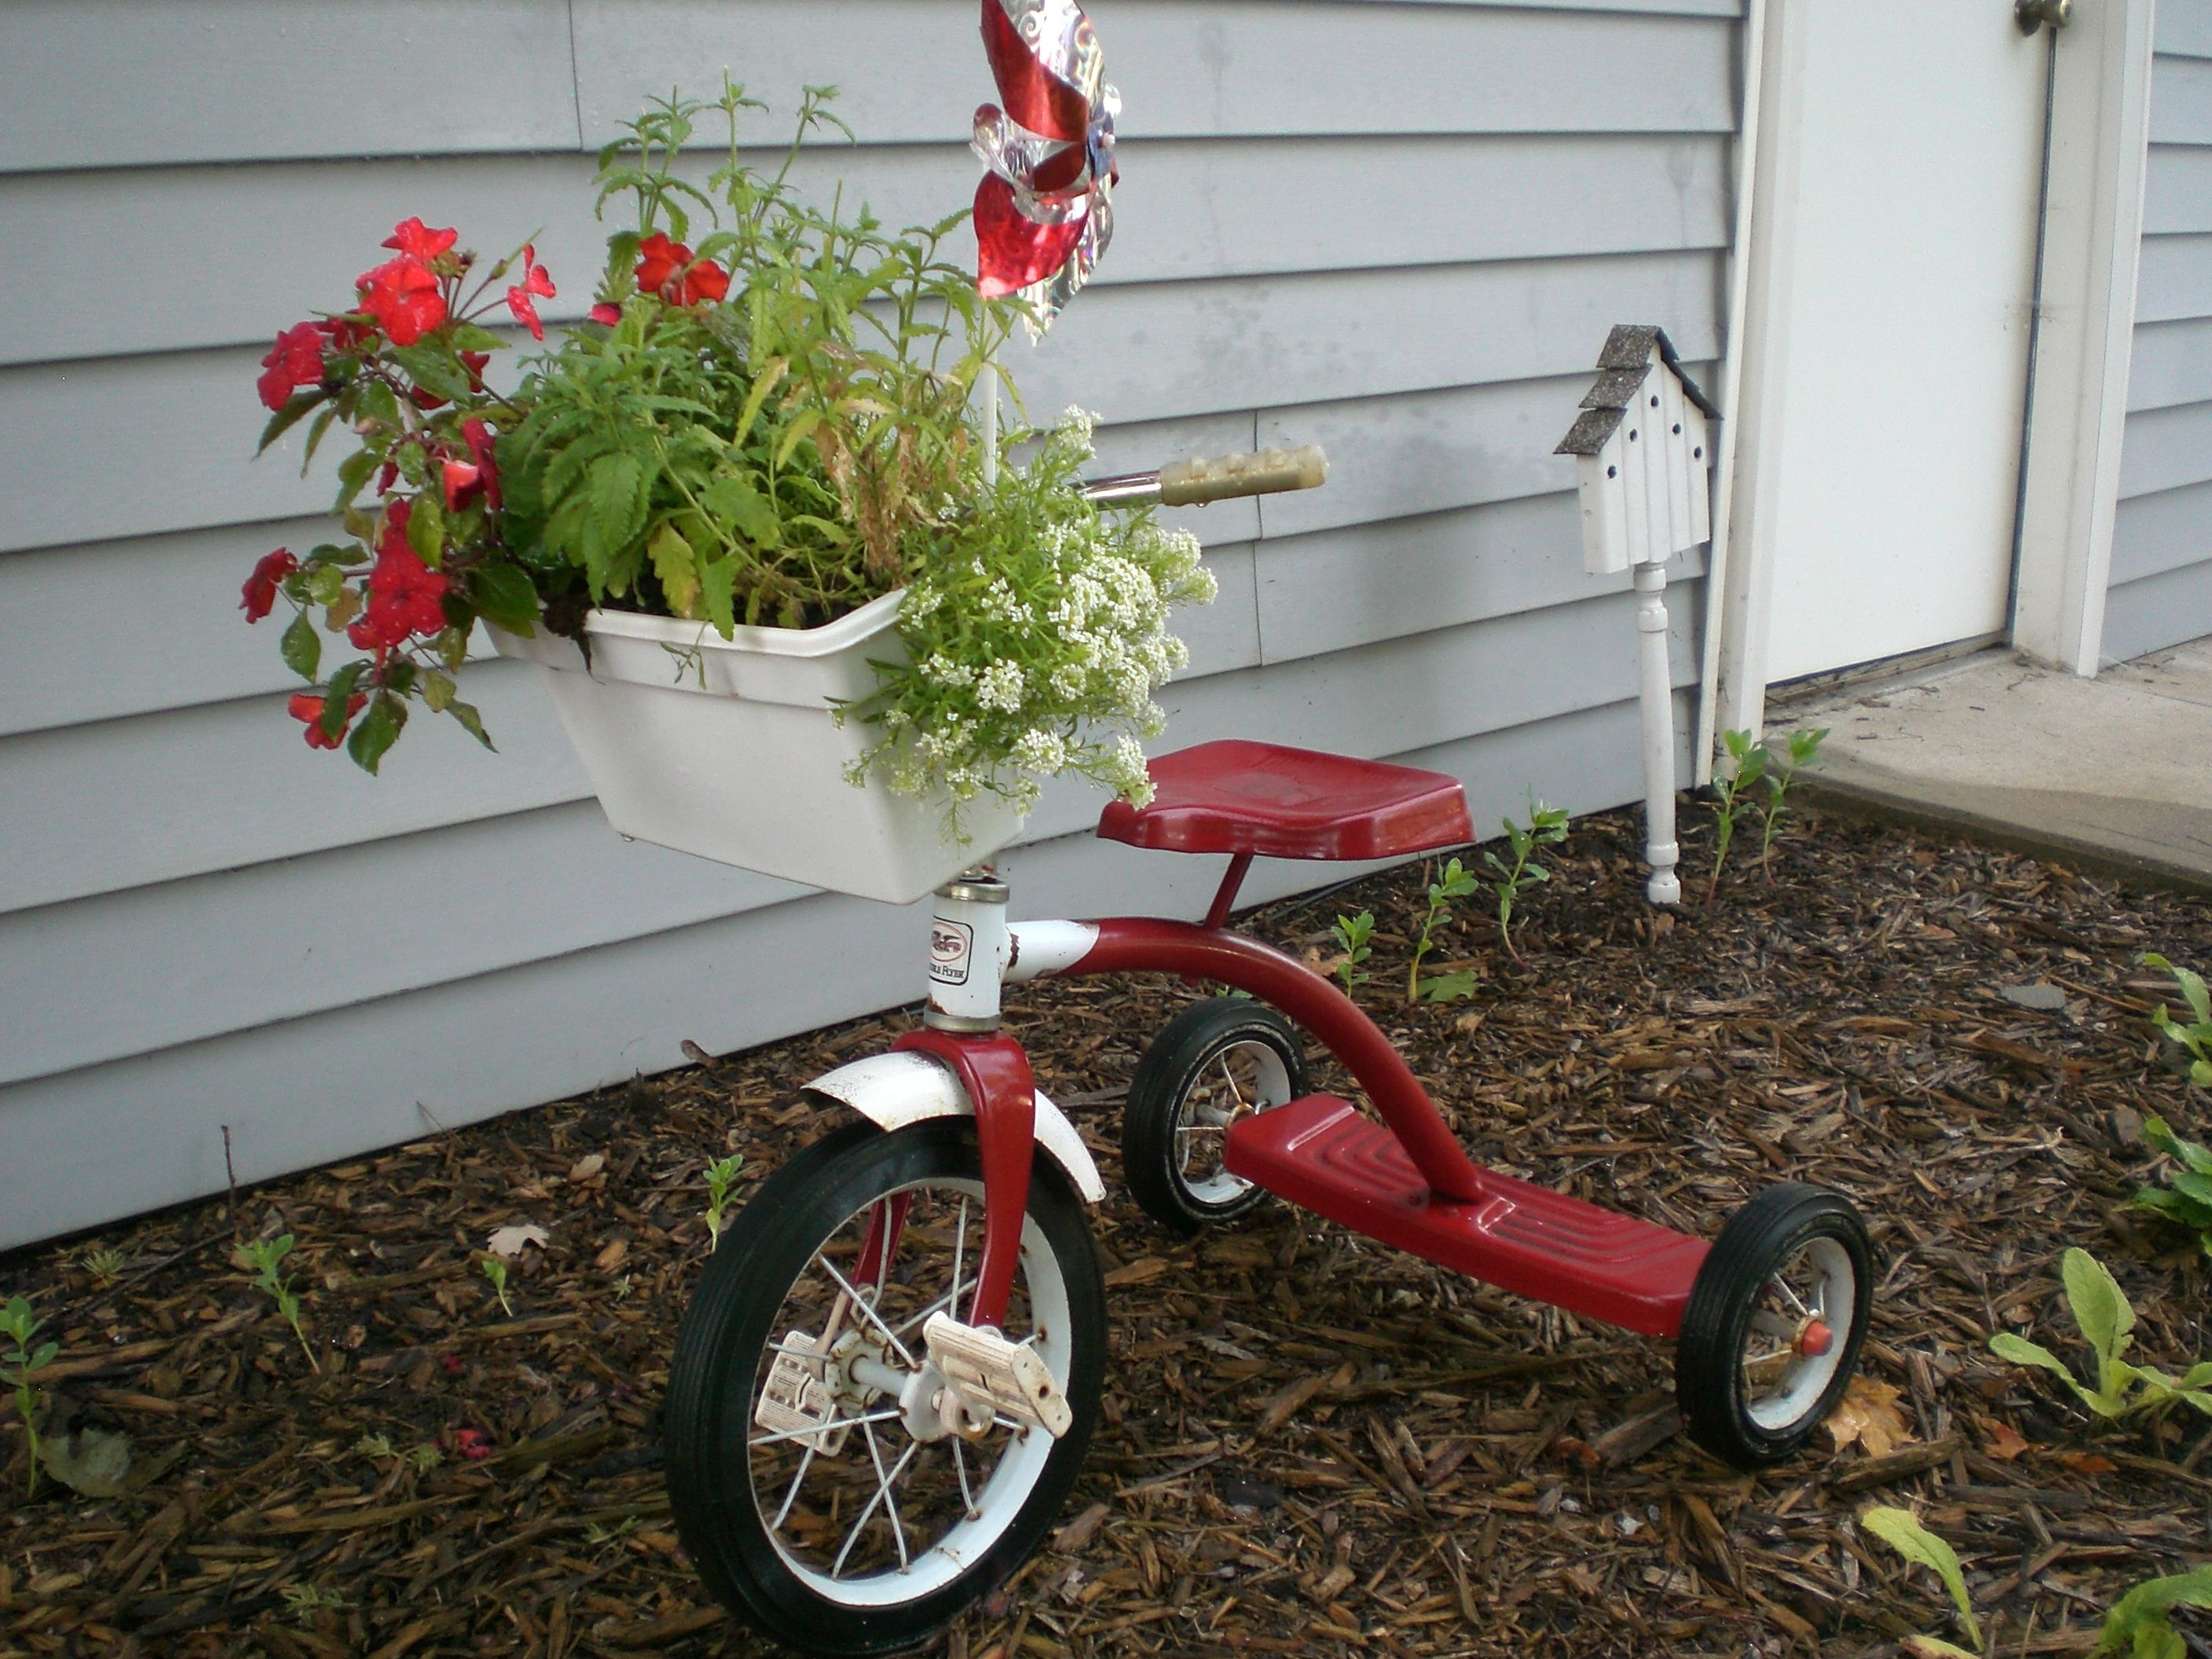 Garage sale trike with planter made out of a freezer container for ice cubes.